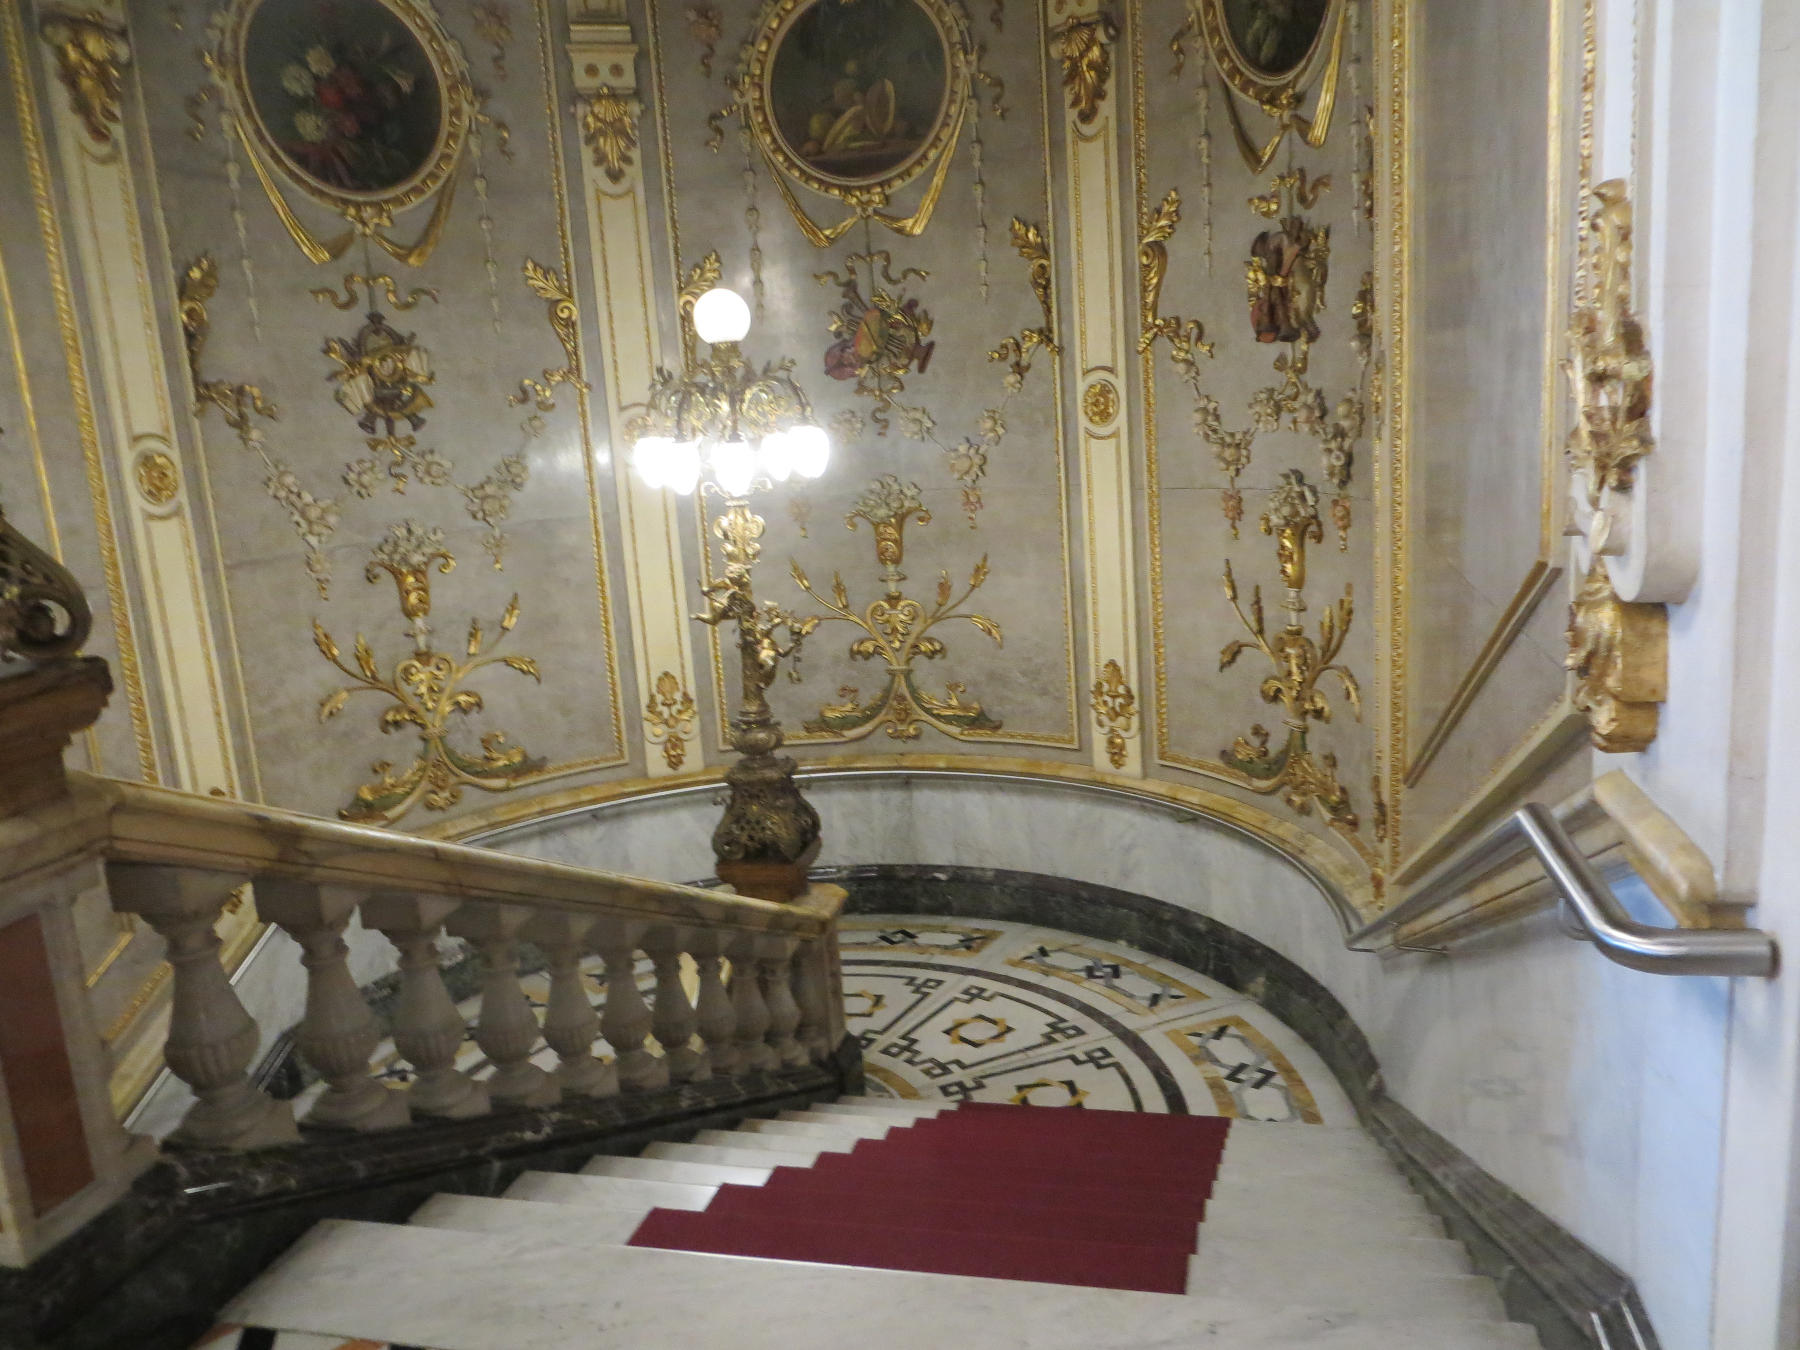 Ornate marble staircases are decorated with paintings and gold leaf detail.